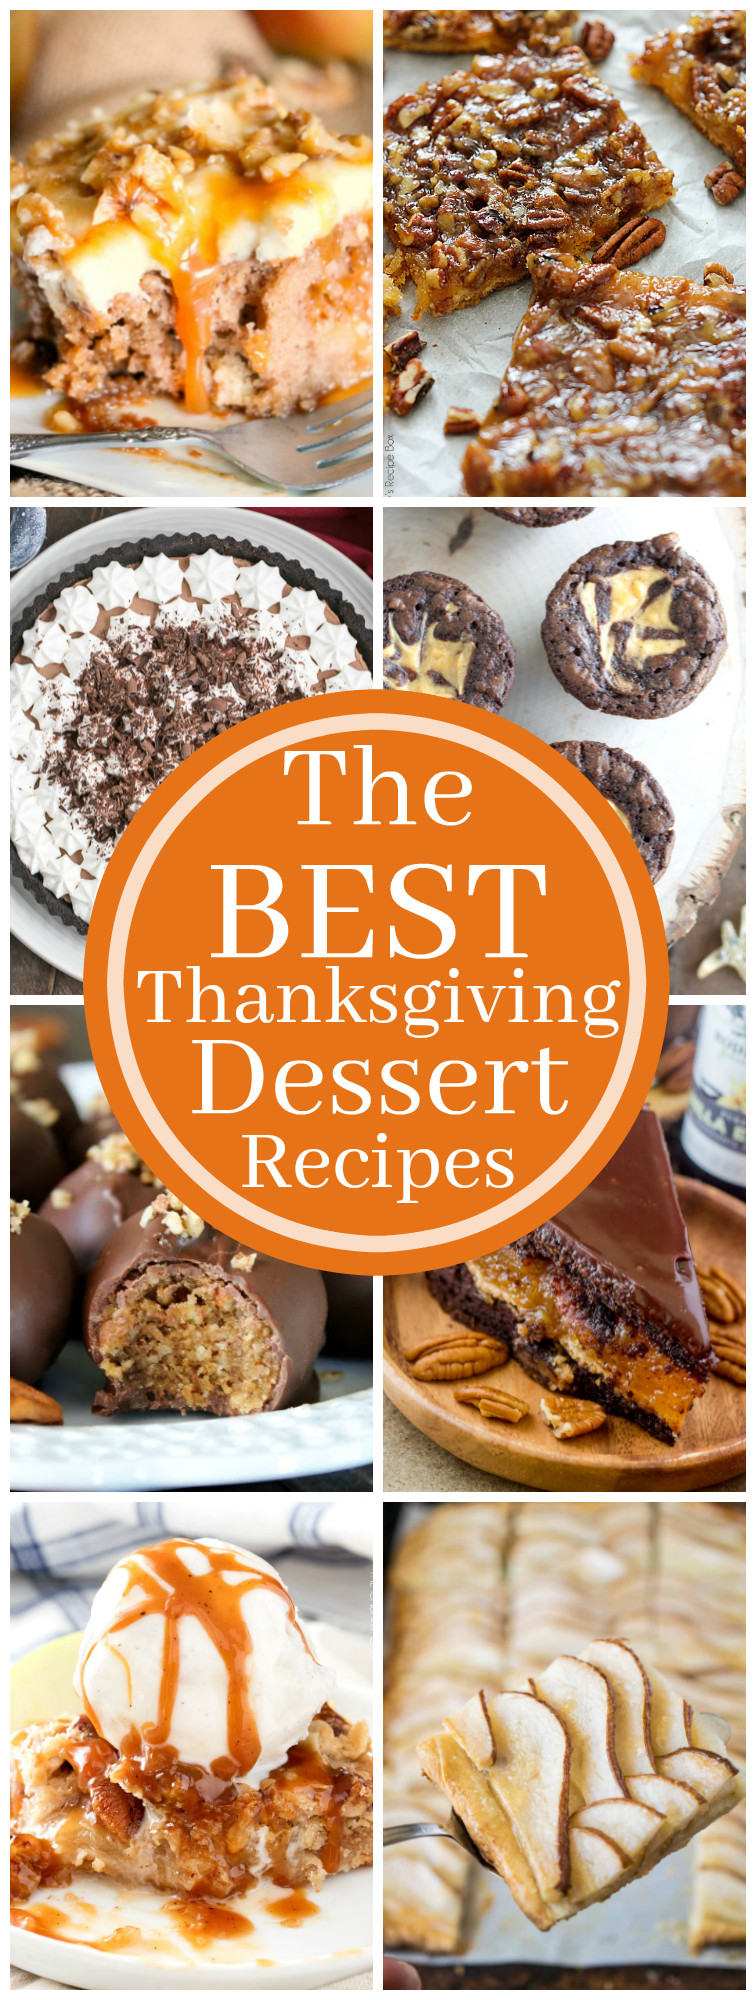 Recipe For Thanksgiving Dessert  The Best Thanksgiving Dessert Recipes The Chunky Chef